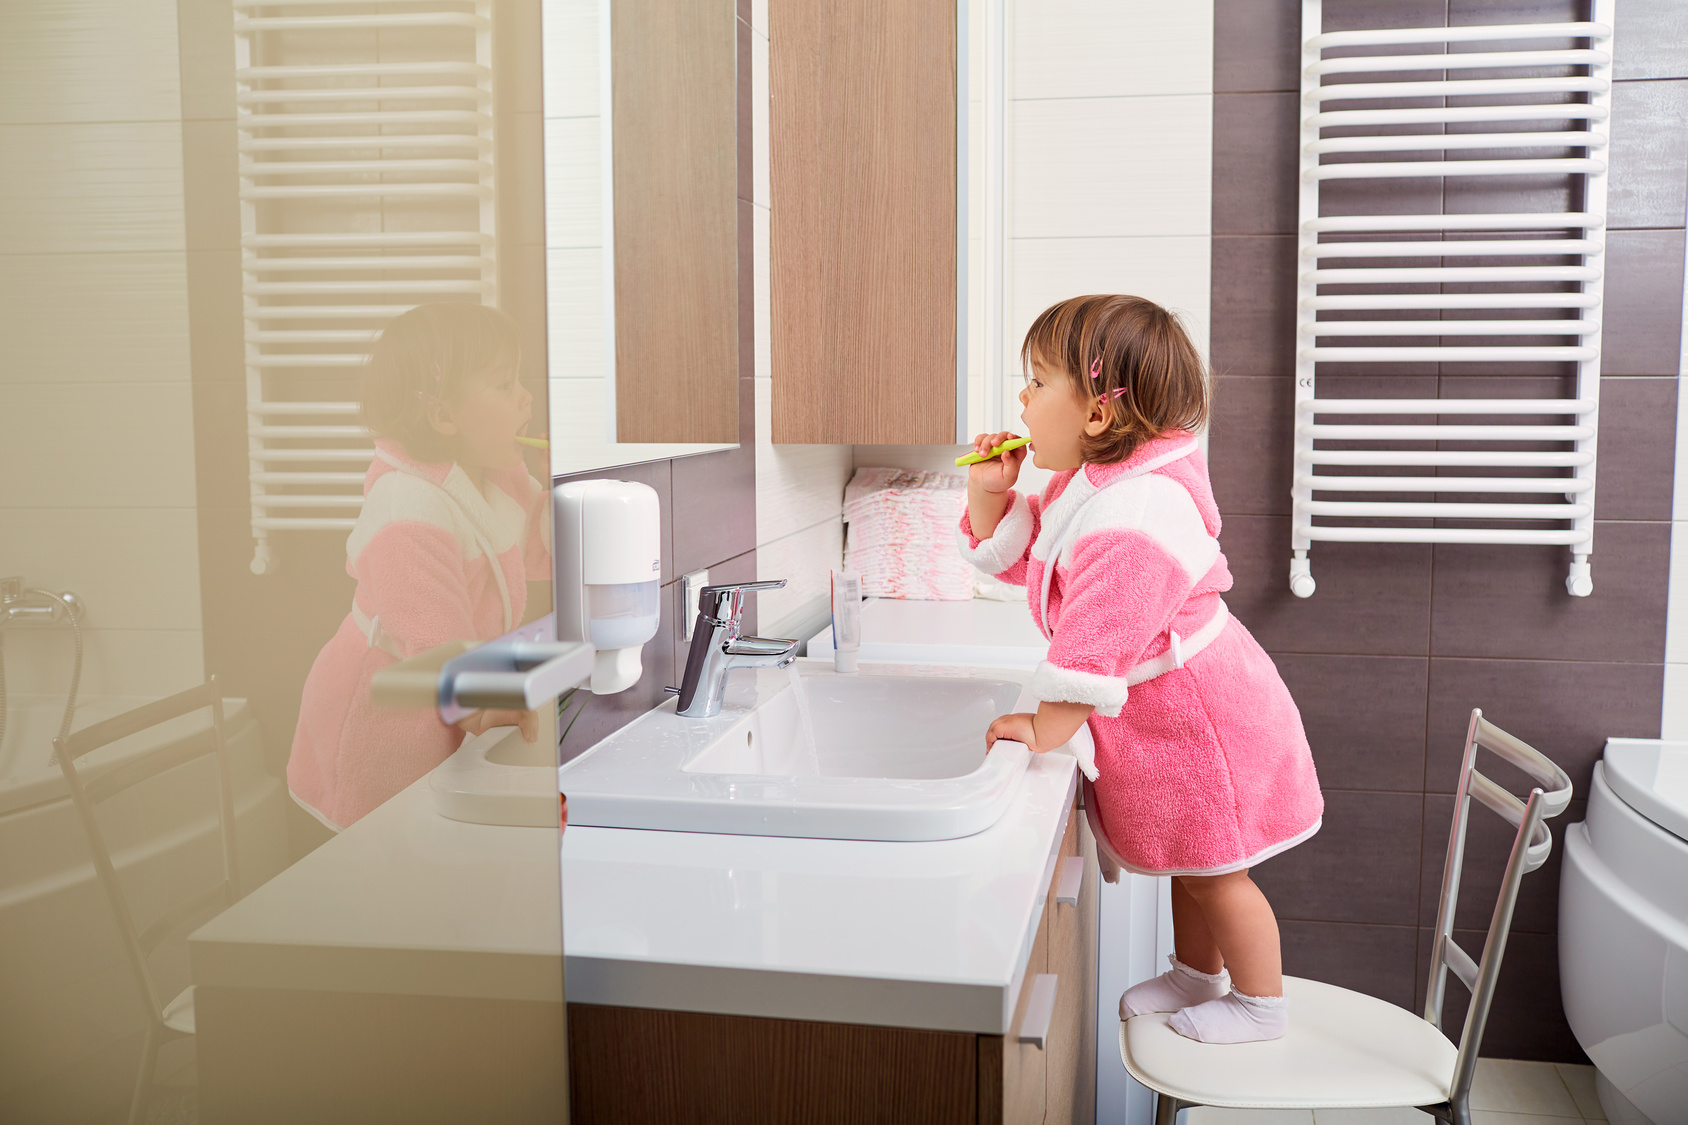 Child cleaning teeth in bathroom.